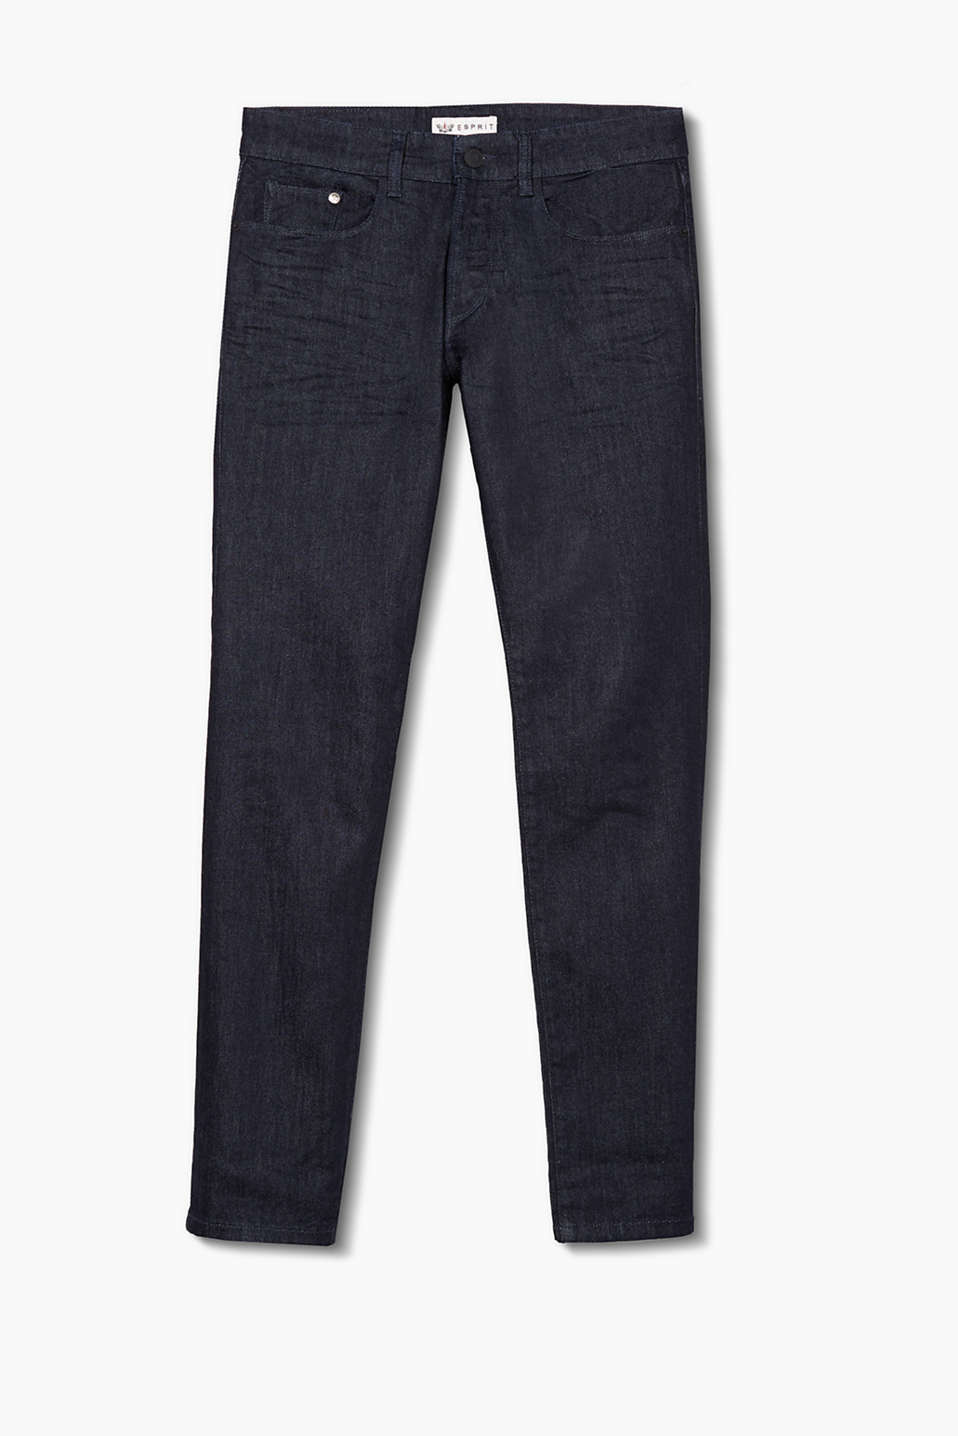 Basic five-pocket jeans in soft stretch denim, zip fly